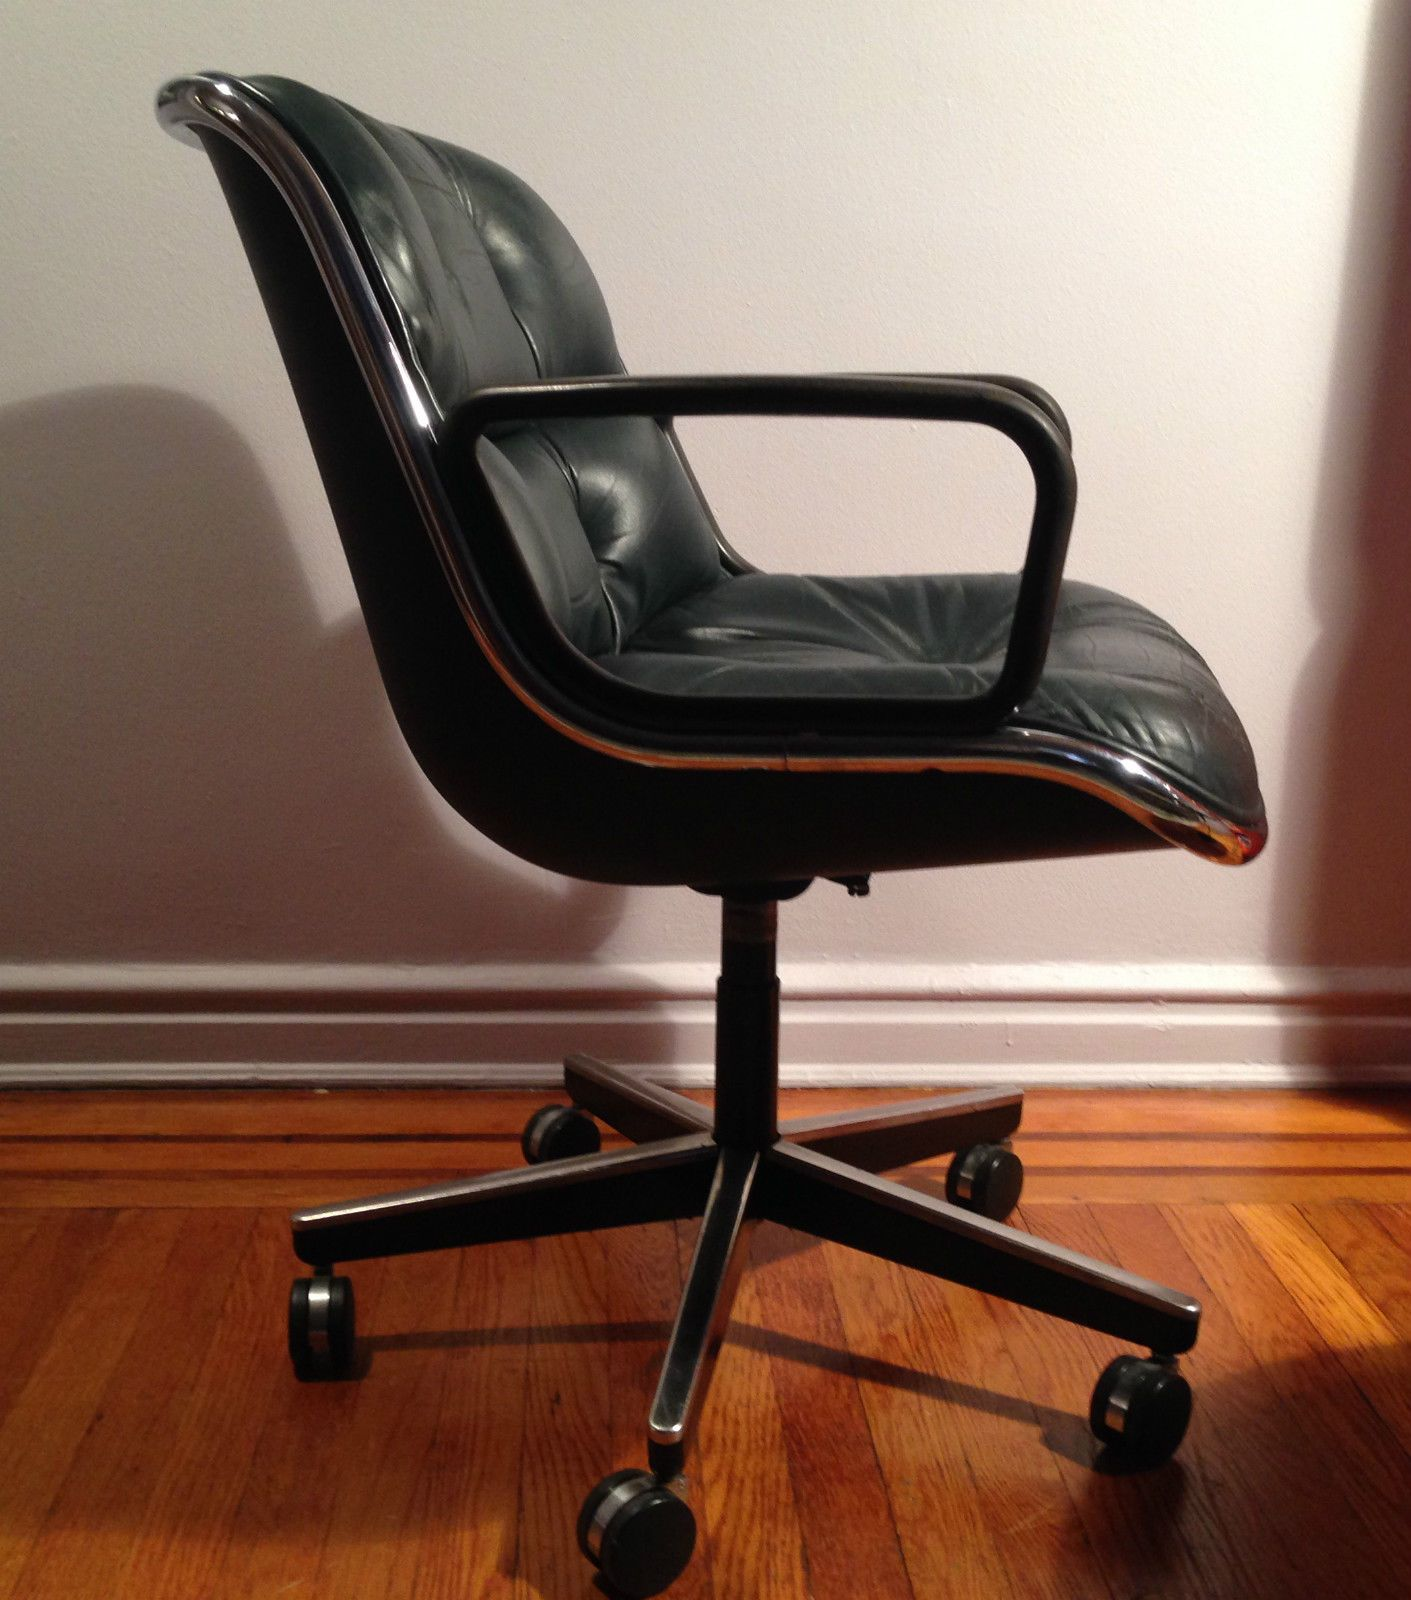 Mid Century Modern Office Chair Vintage Pollock Desk Office Chair Knoll Mid Century Modern